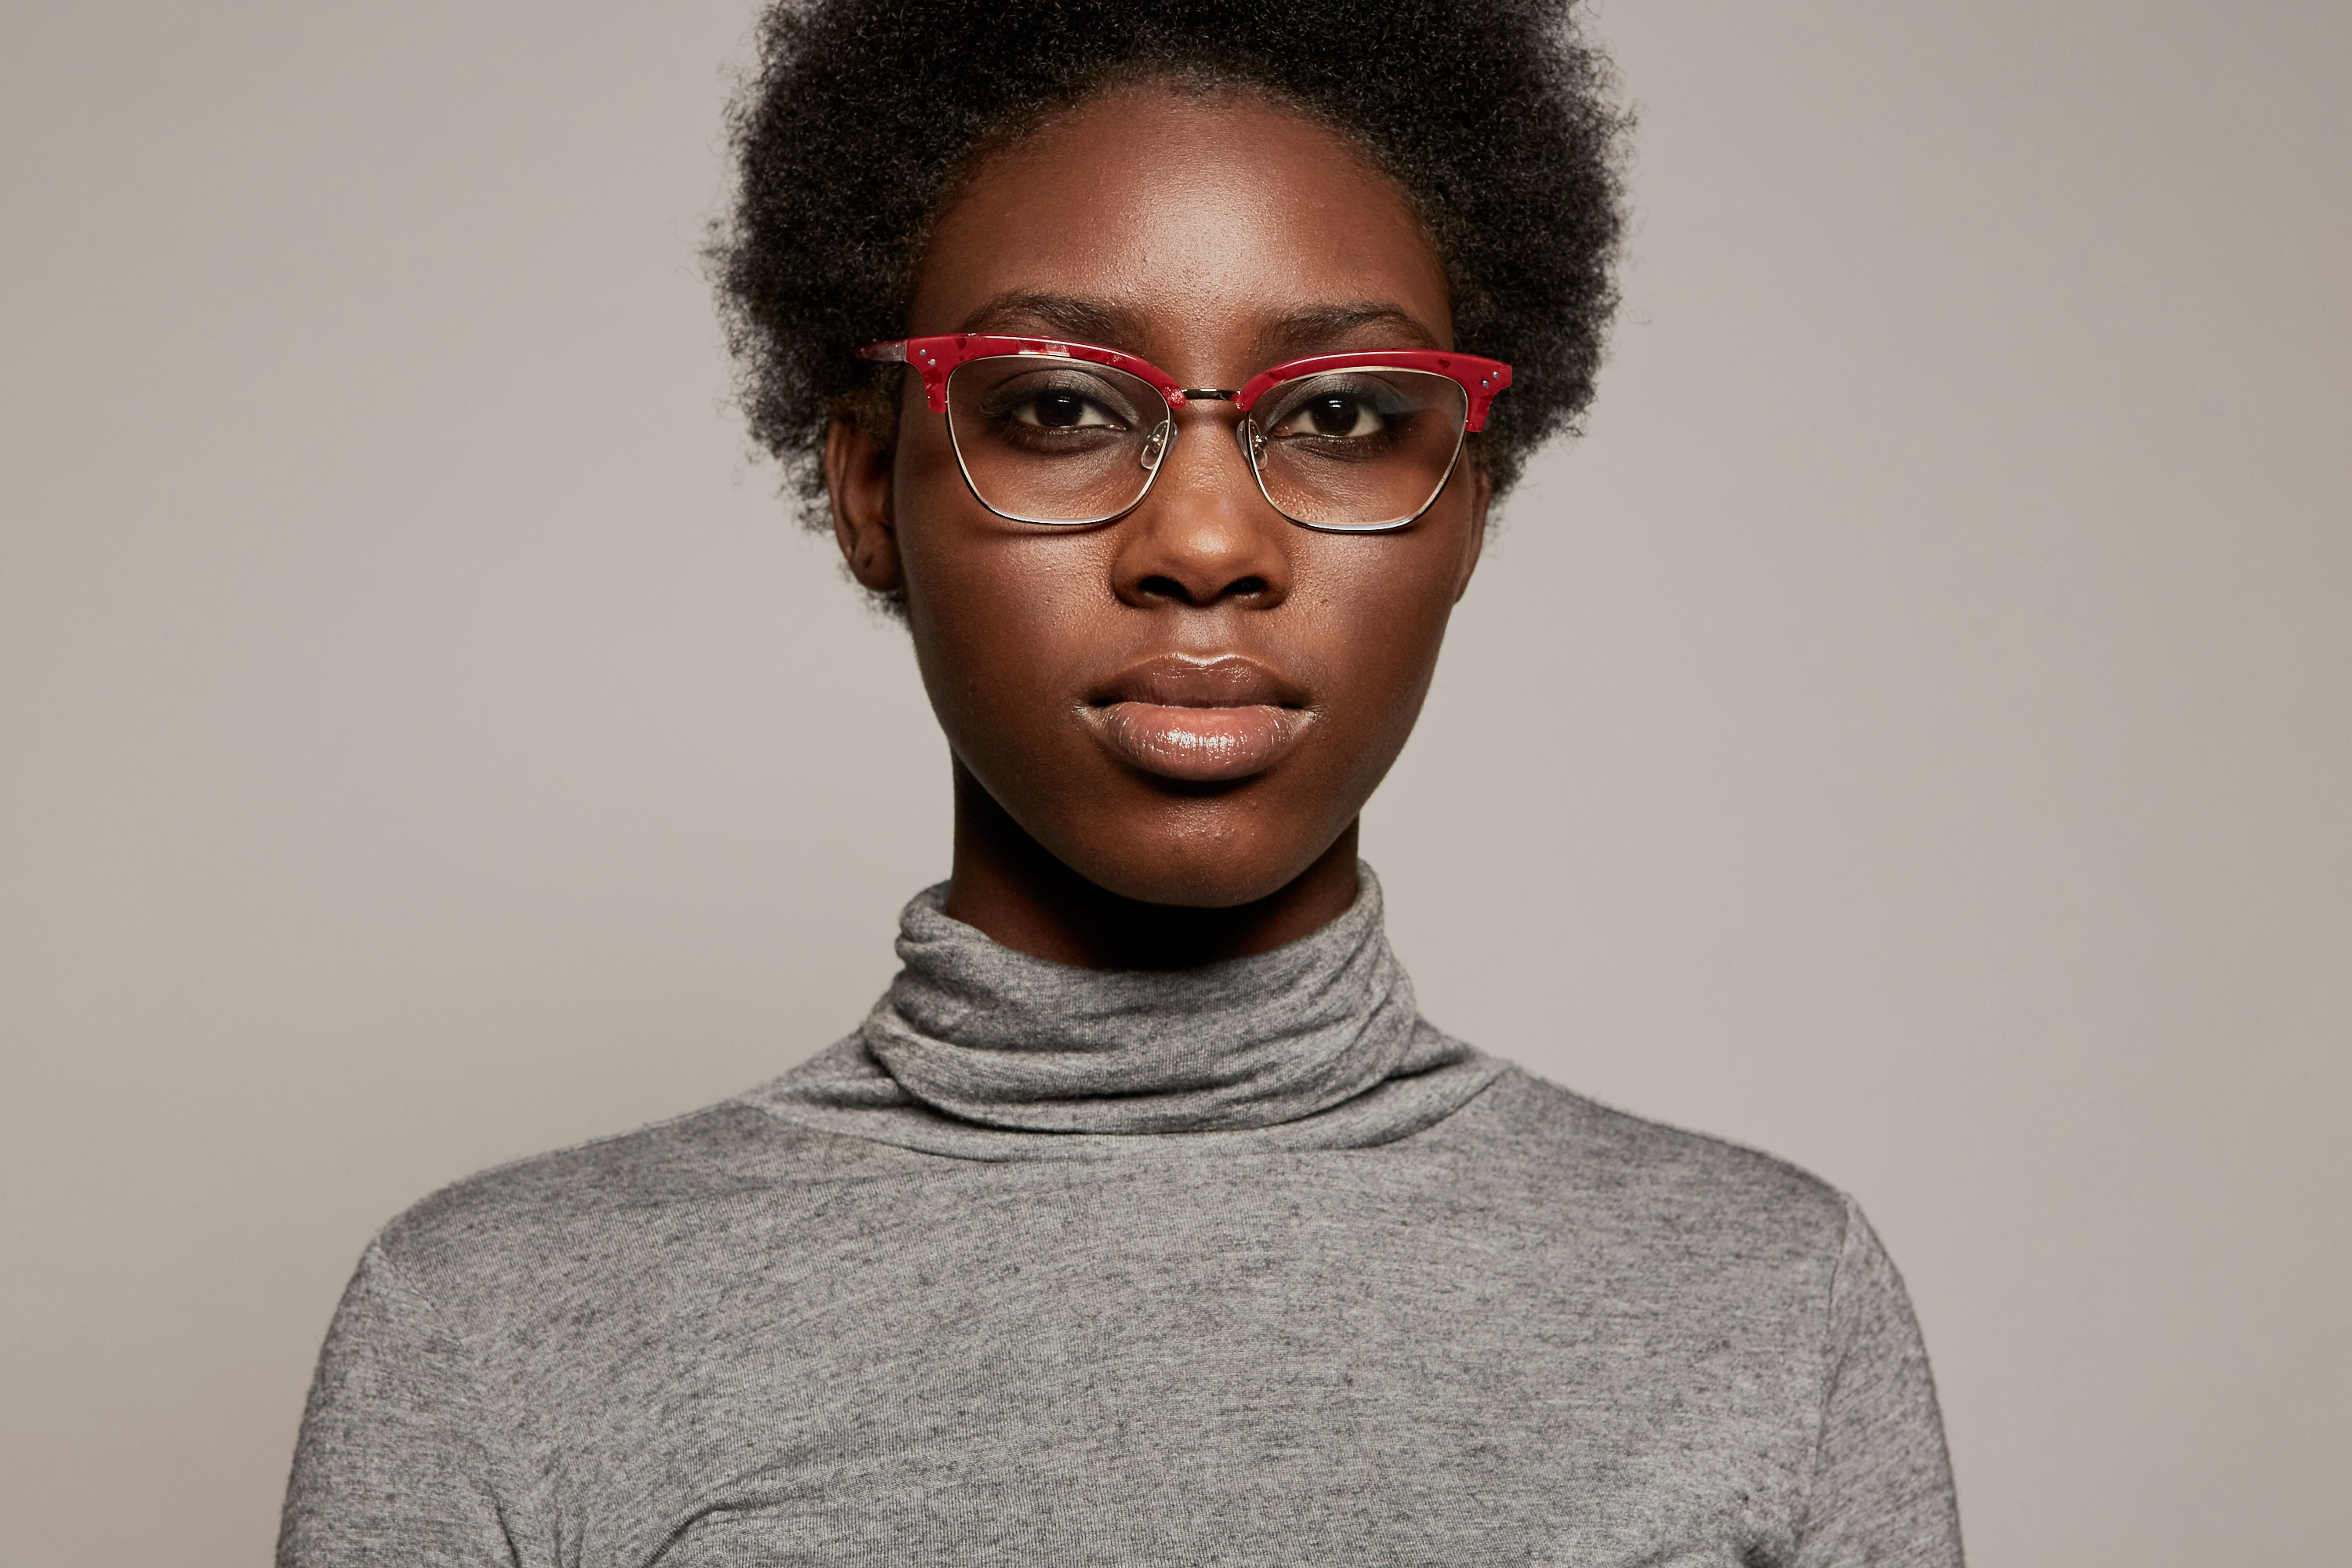 Nina acetate/metal cat eye red sunglasses by GIGI Studios